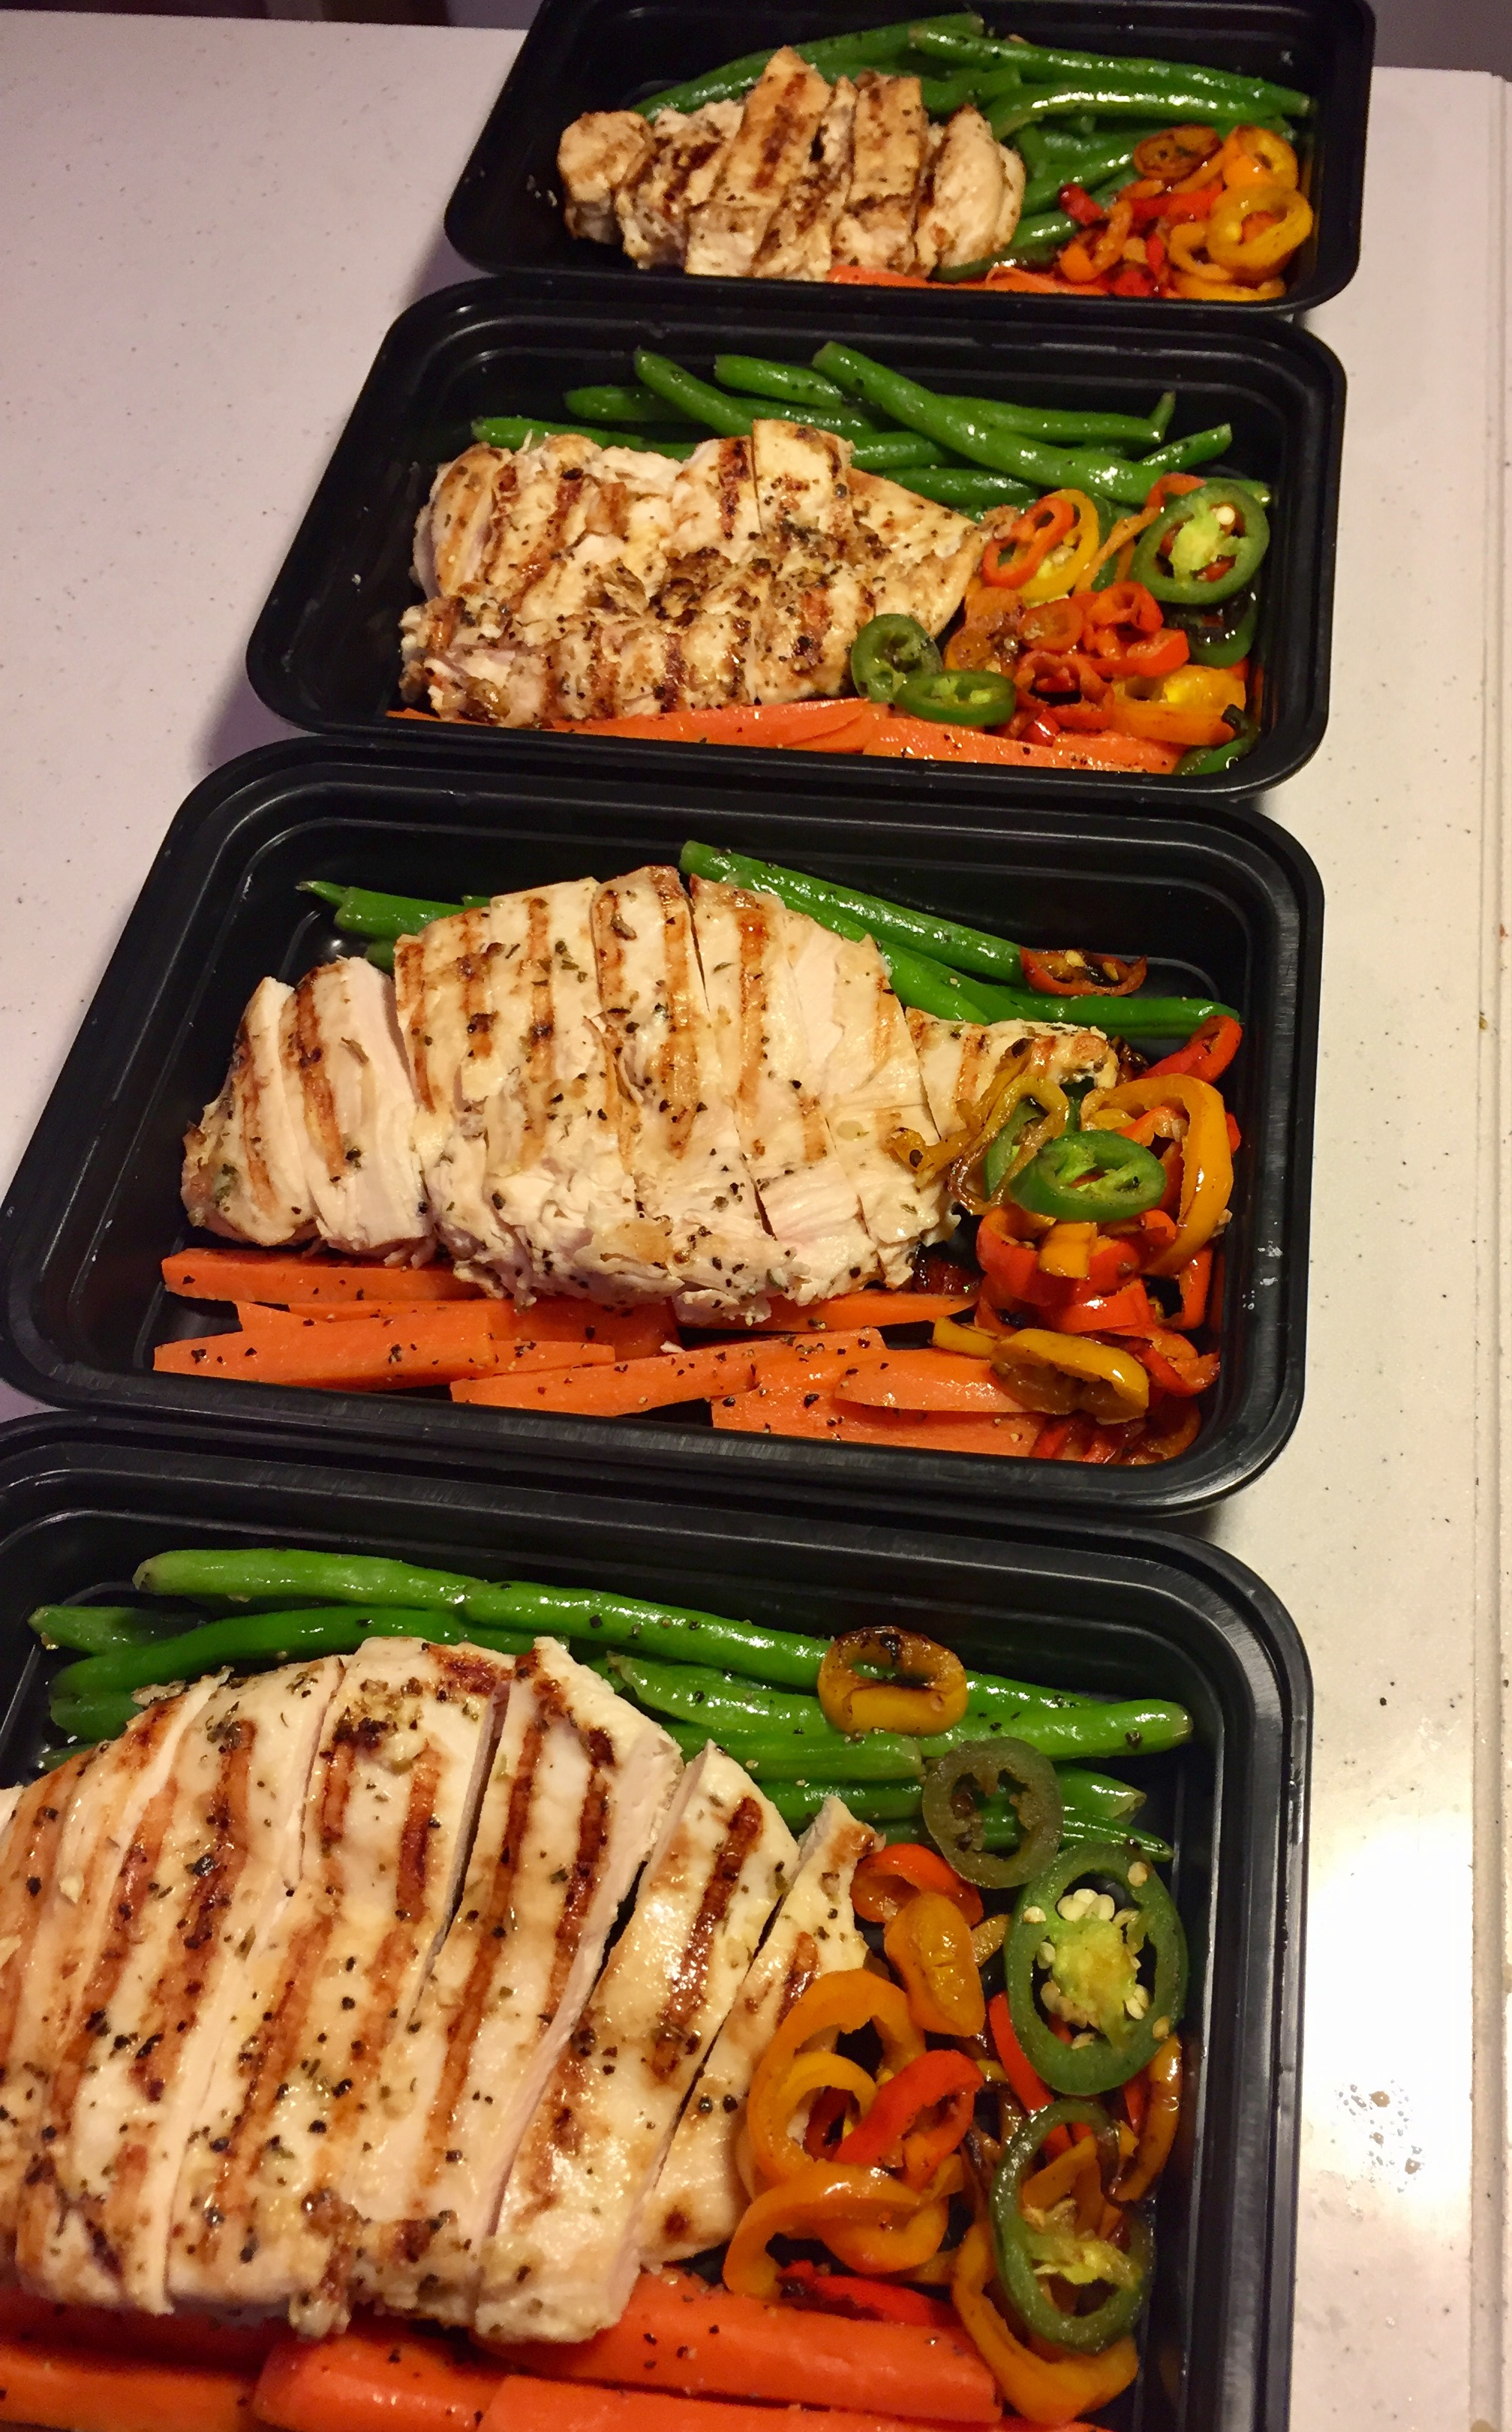 Italian Chicken with Carrots, Green Beans, and Peppers